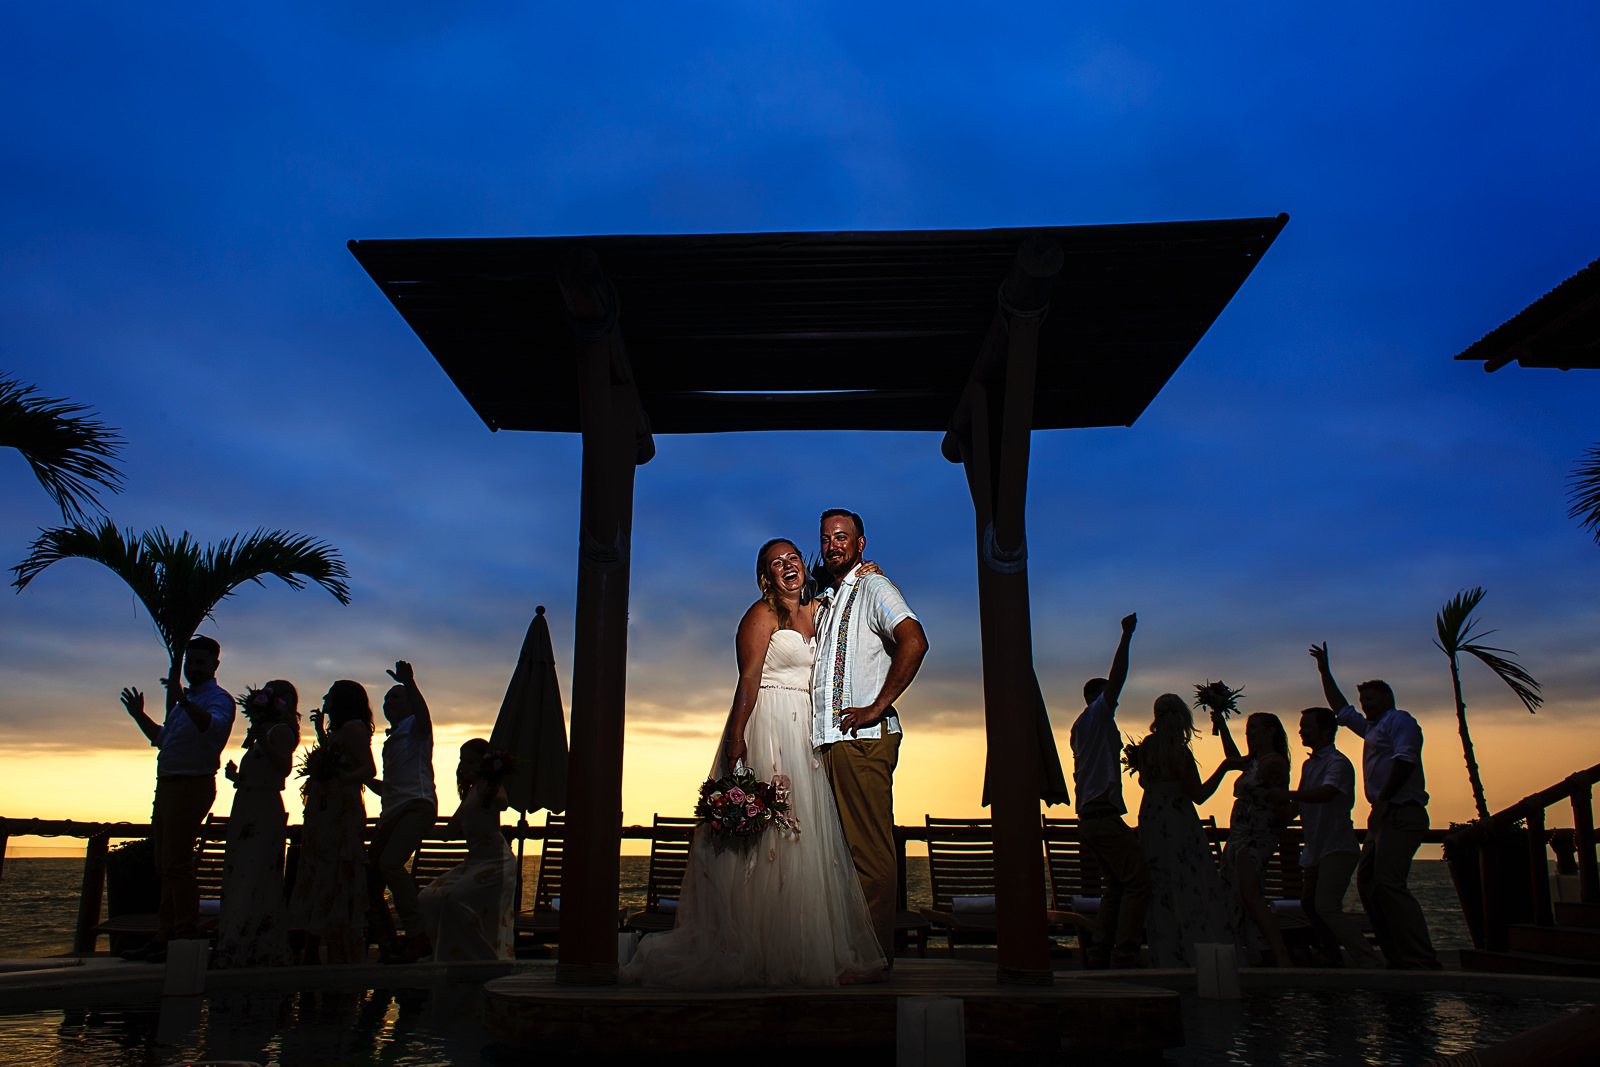 groom-bride-bridal-party-sunset-happy-wild-crazy-magmod.jpg